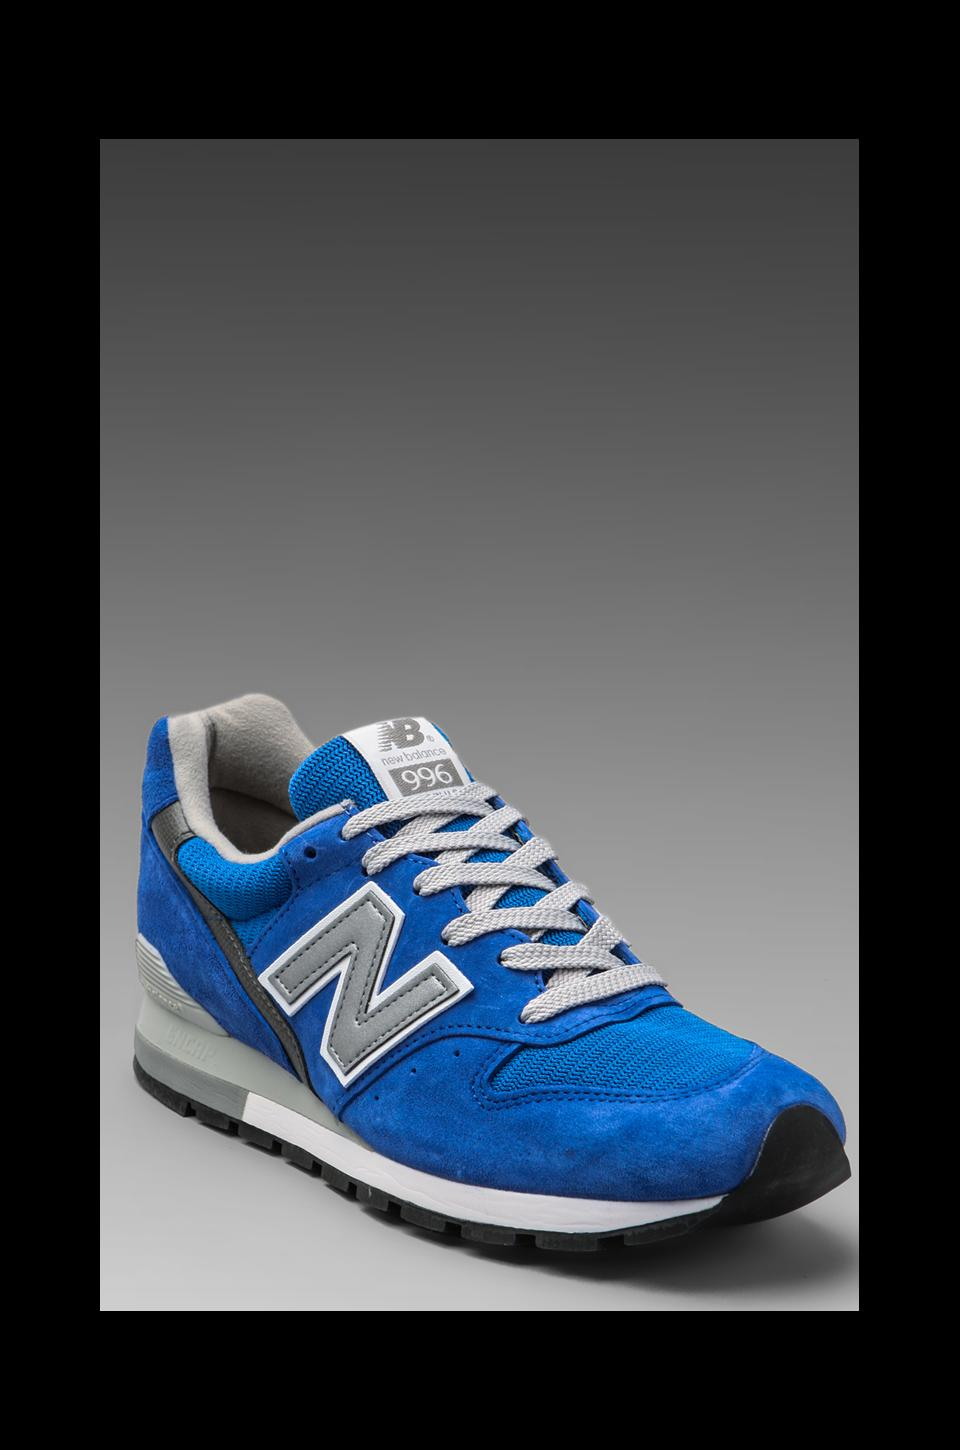 New Balance Made in the USA Classic M996 in Royal Blue